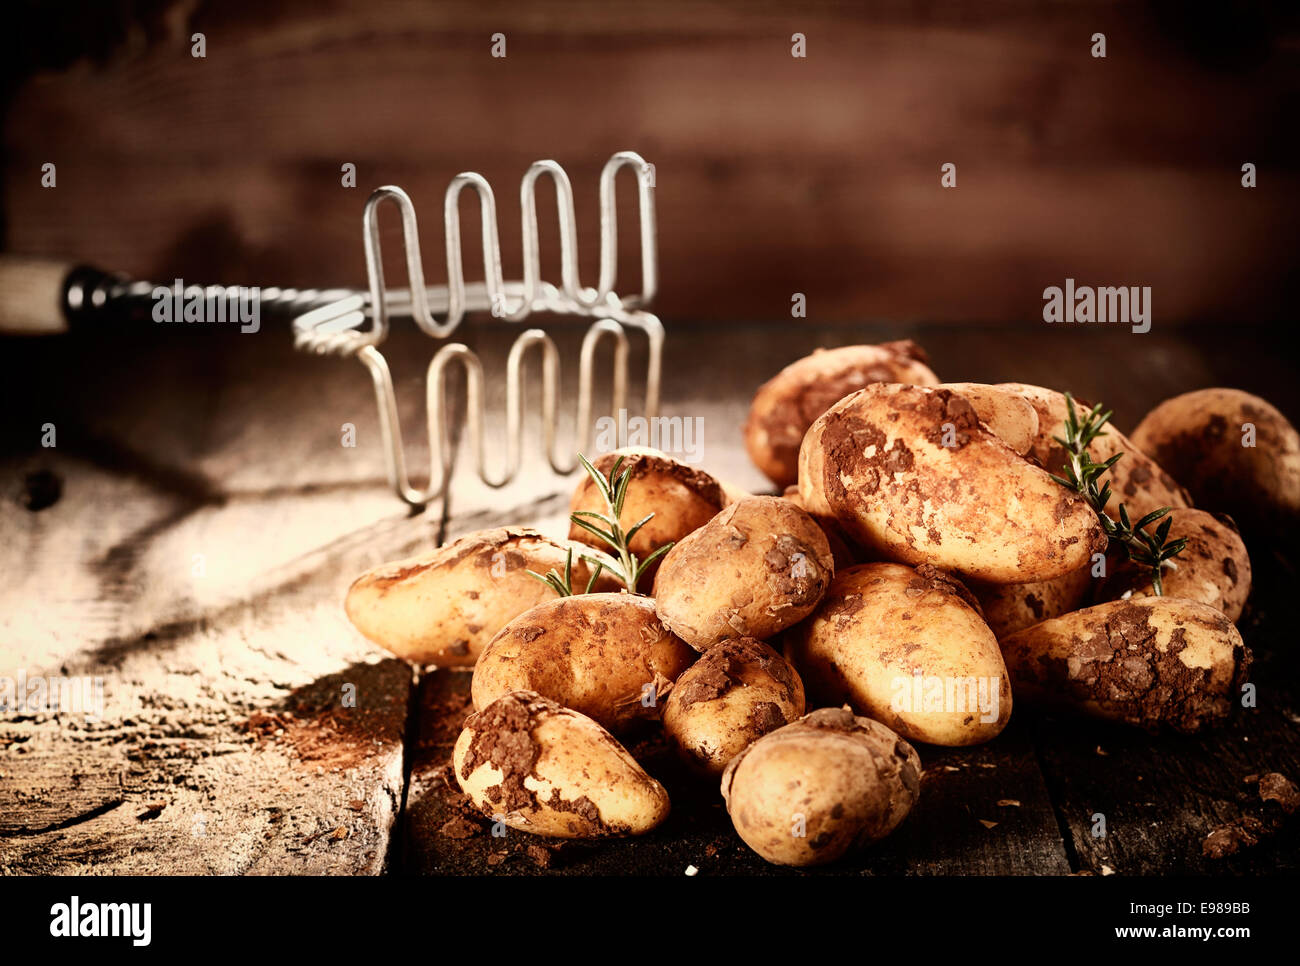 Pile of fresh earthy potatoes with clinging soil and sprigs of rosemary alongside an old retro potato masher - Stock Image